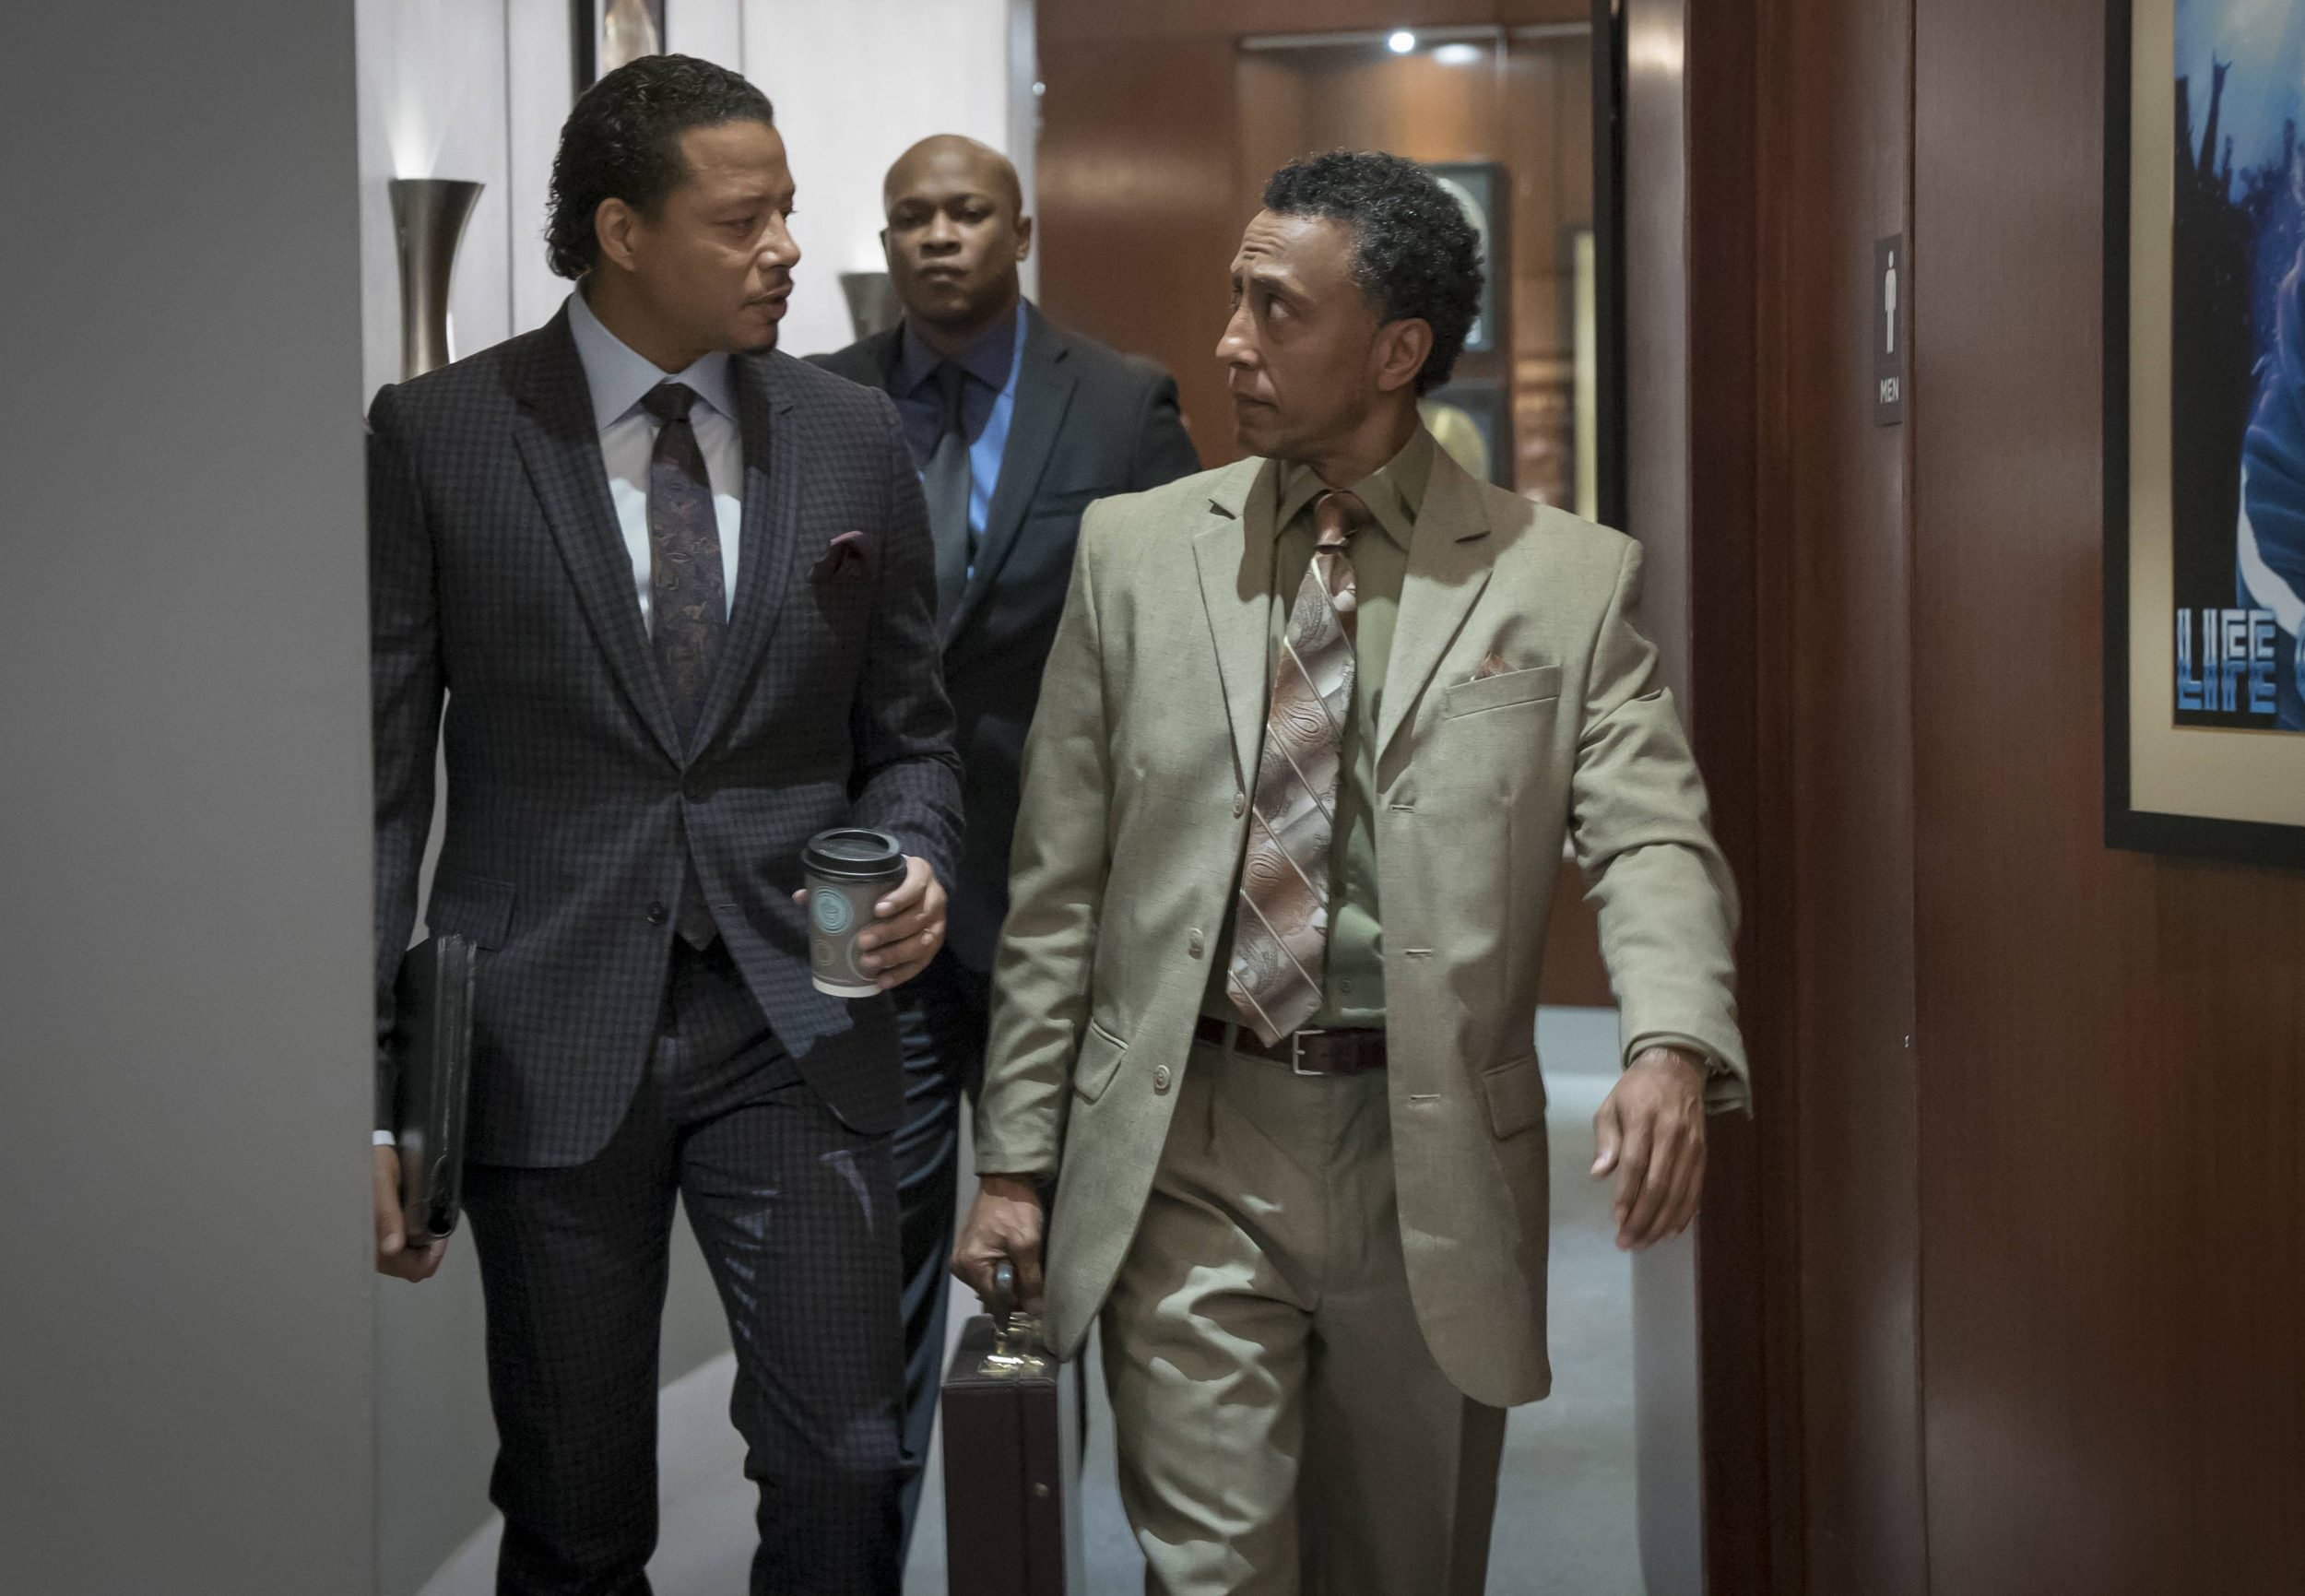 """EMPIRE: Pictured L-R: Terrence Howard, guest stars Web and Andre Royo in the """"Sound & Fury"""" spring premiere episode of EMPIRE airing Wednesday, March 22 (9:00-10:00 PM ET/PT) on FOX. ©2017 Fox Broadcasting Co. CR: Chuck Hodes/FOX"""